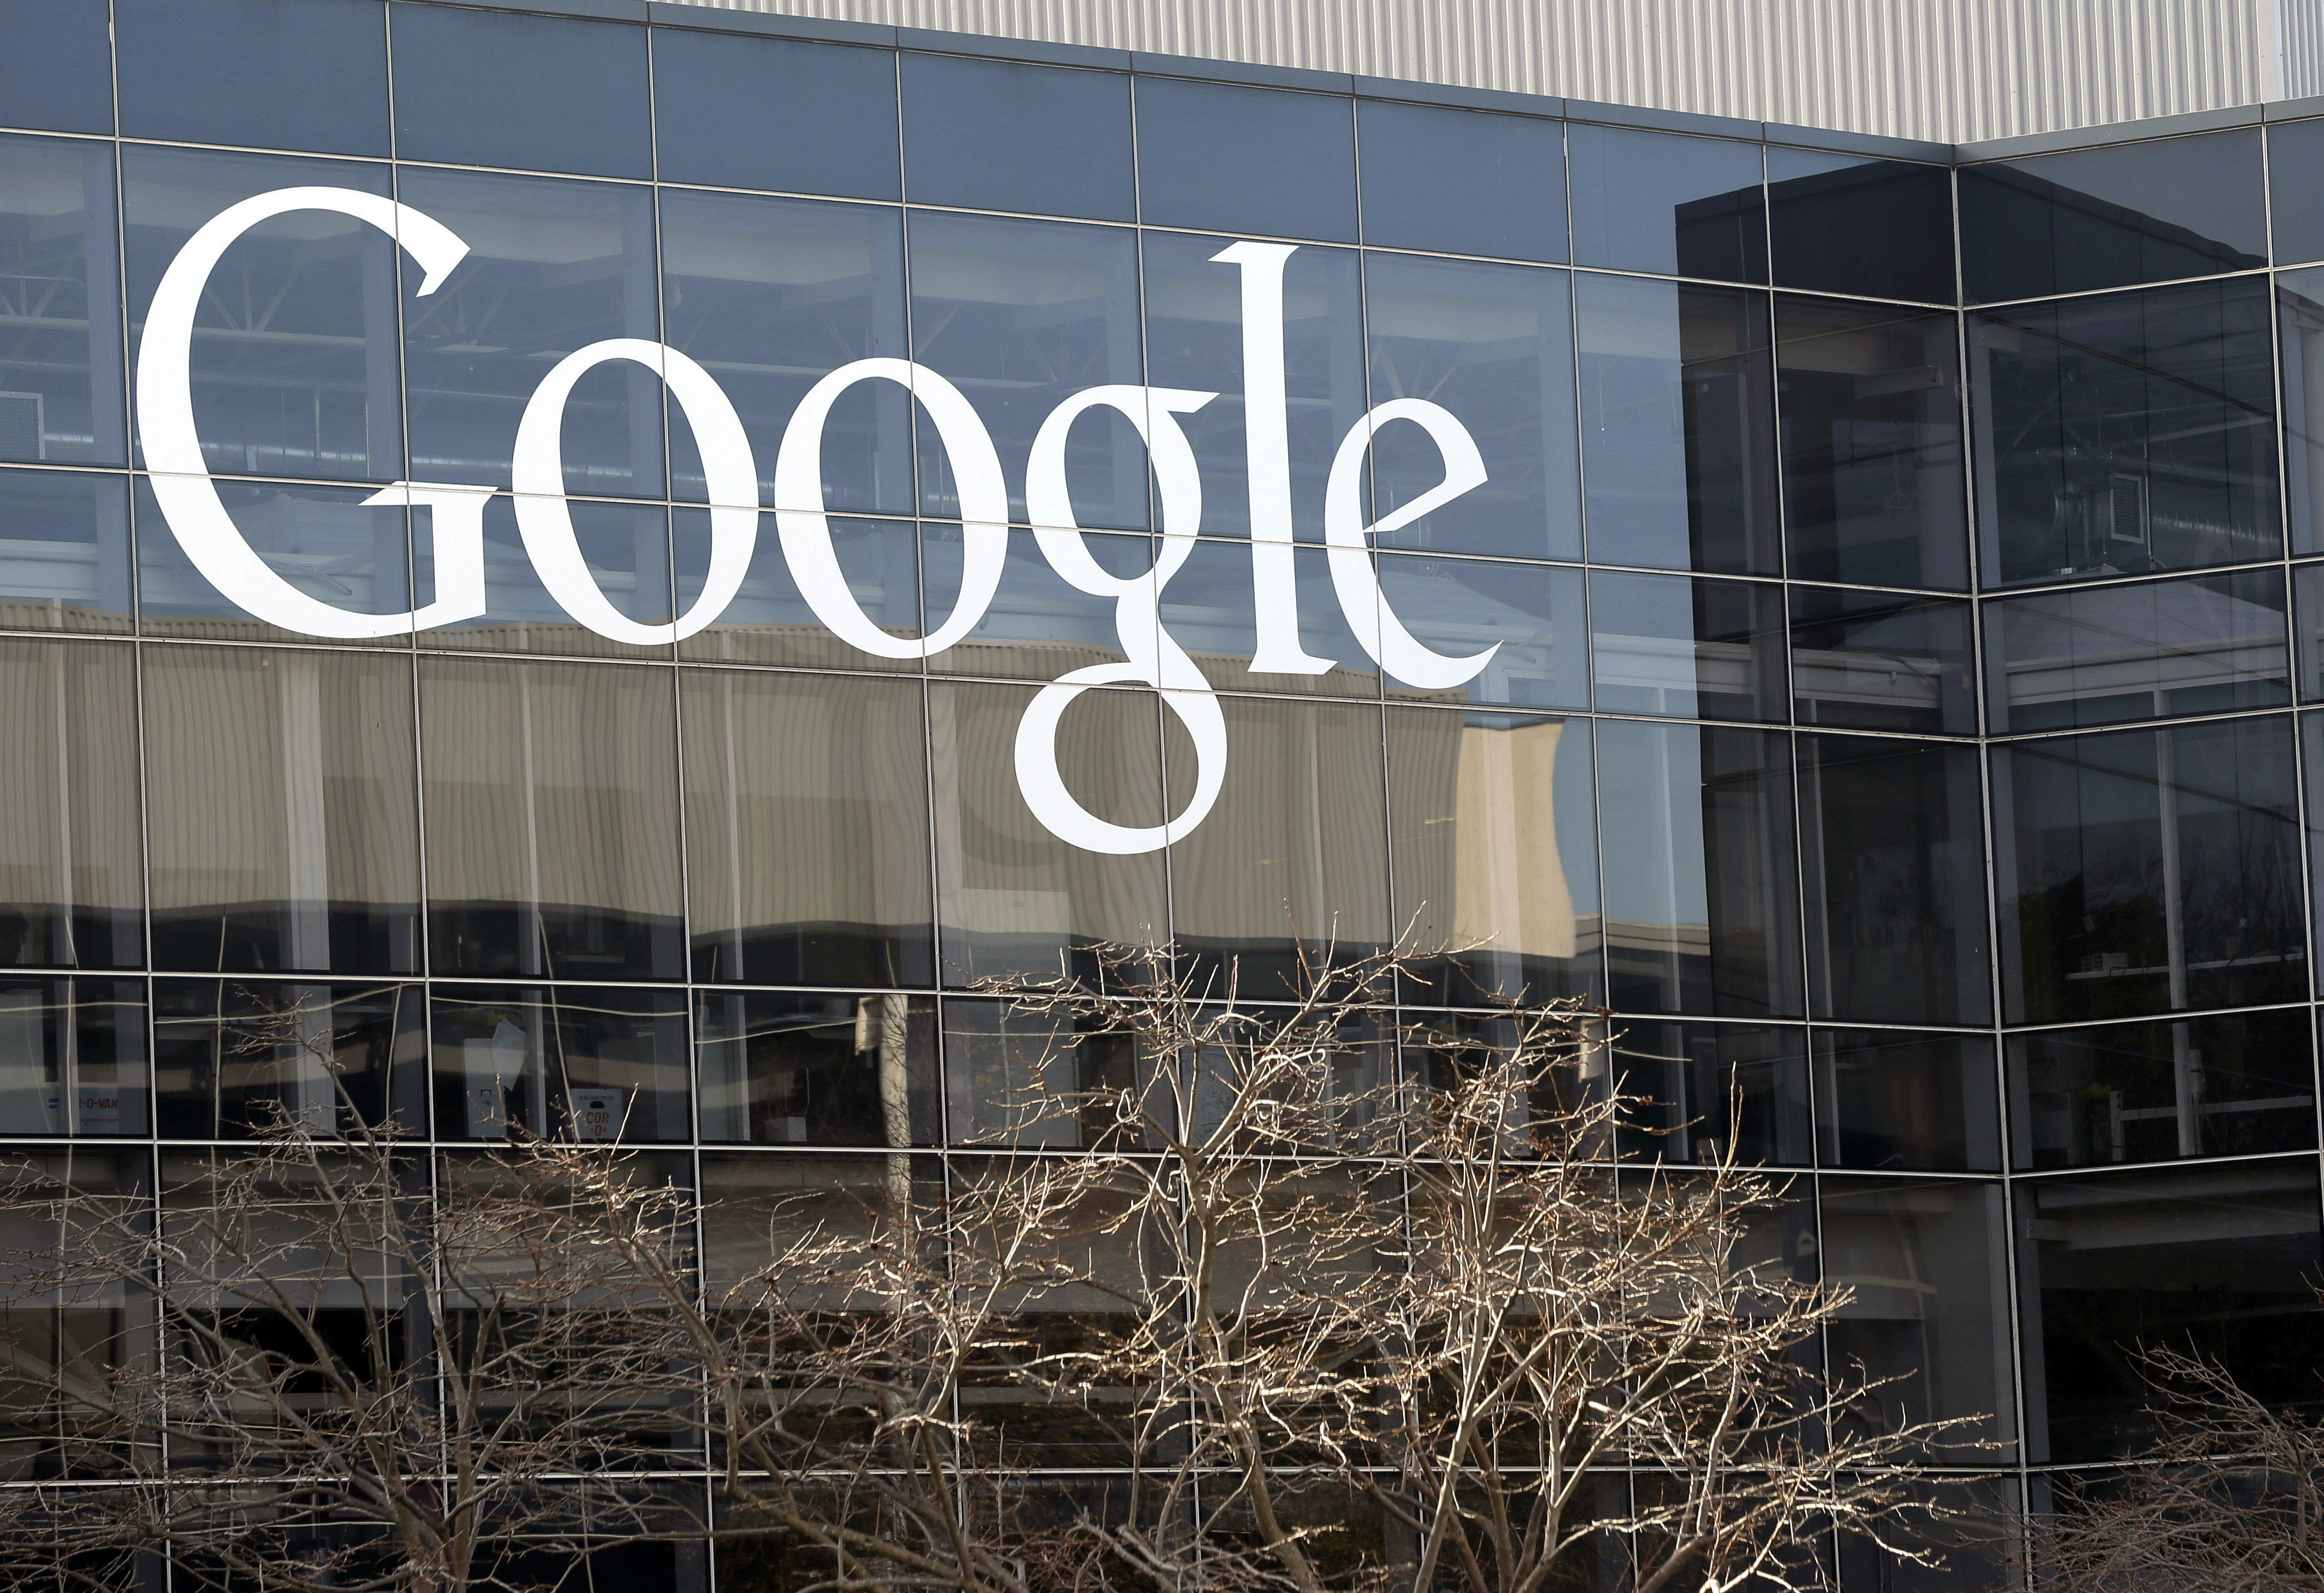 FILE - This Thursday, Jan. 3, 2013, file photo shows Google's headquarters in Mountain View, Calif. AP